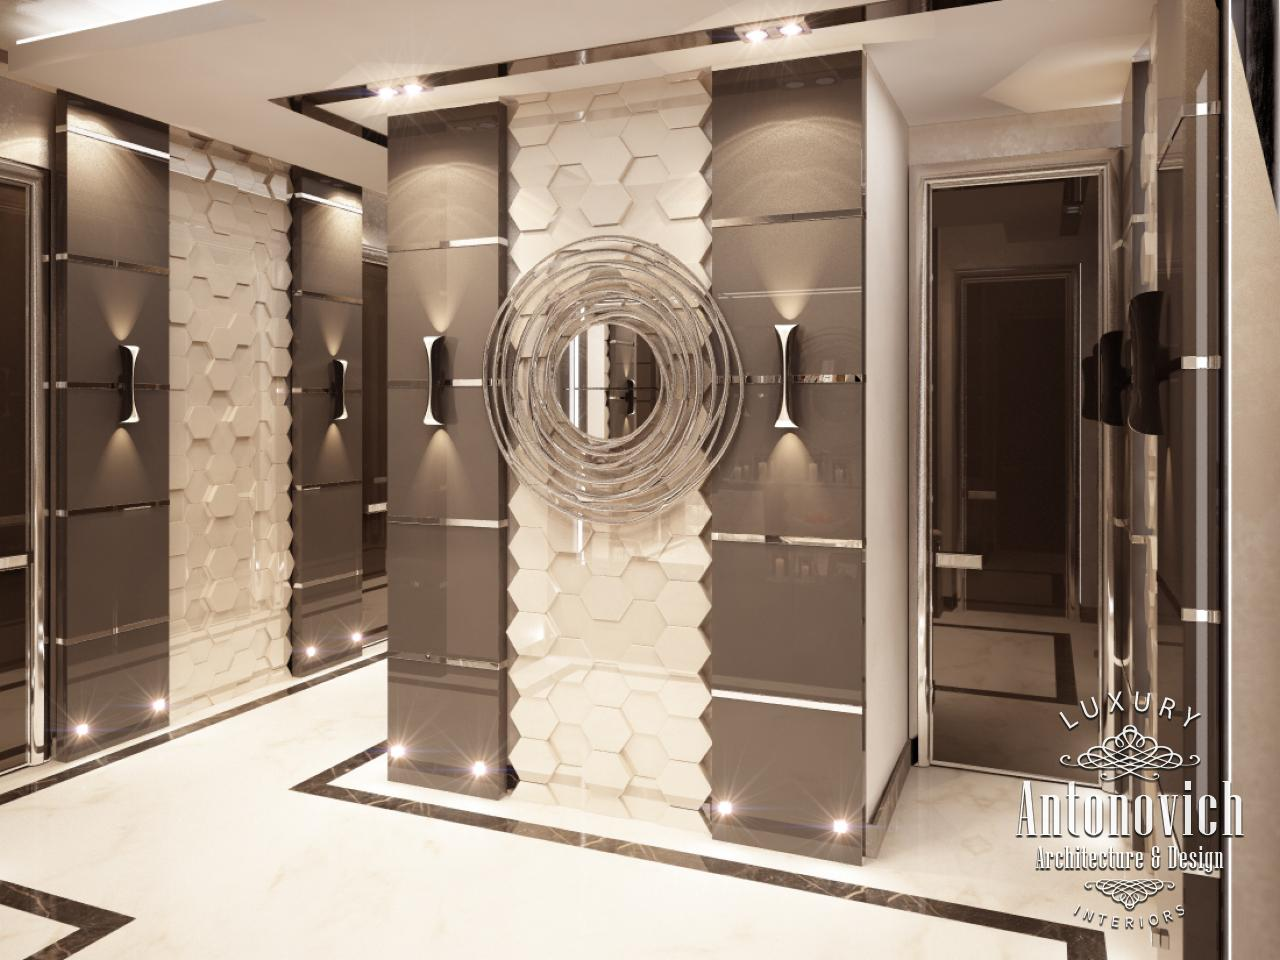 Beautiful dressing room design in dubai by luxury antonovich design - Modern Style In The Author S Works Of Luxury Antonovich Design Reflect Future In Interior Design